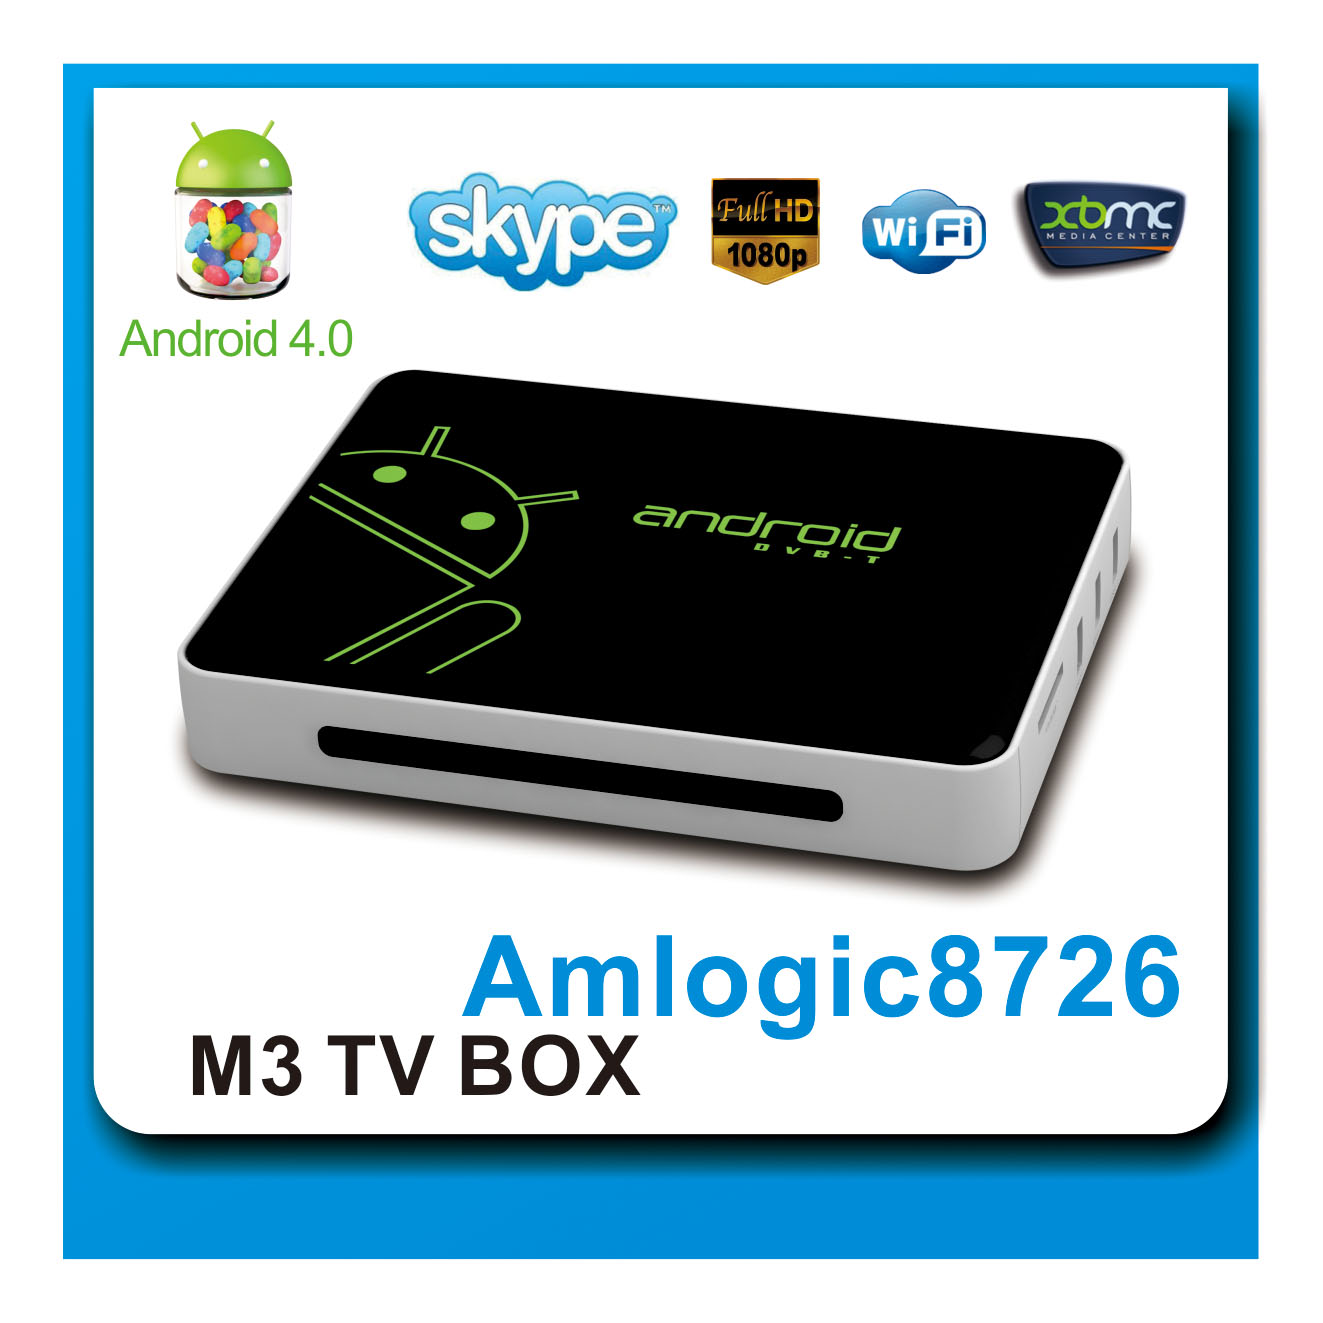 2013 new arrival google android dvb-t smart box with HDMI adaptor,A/V Cable,Air